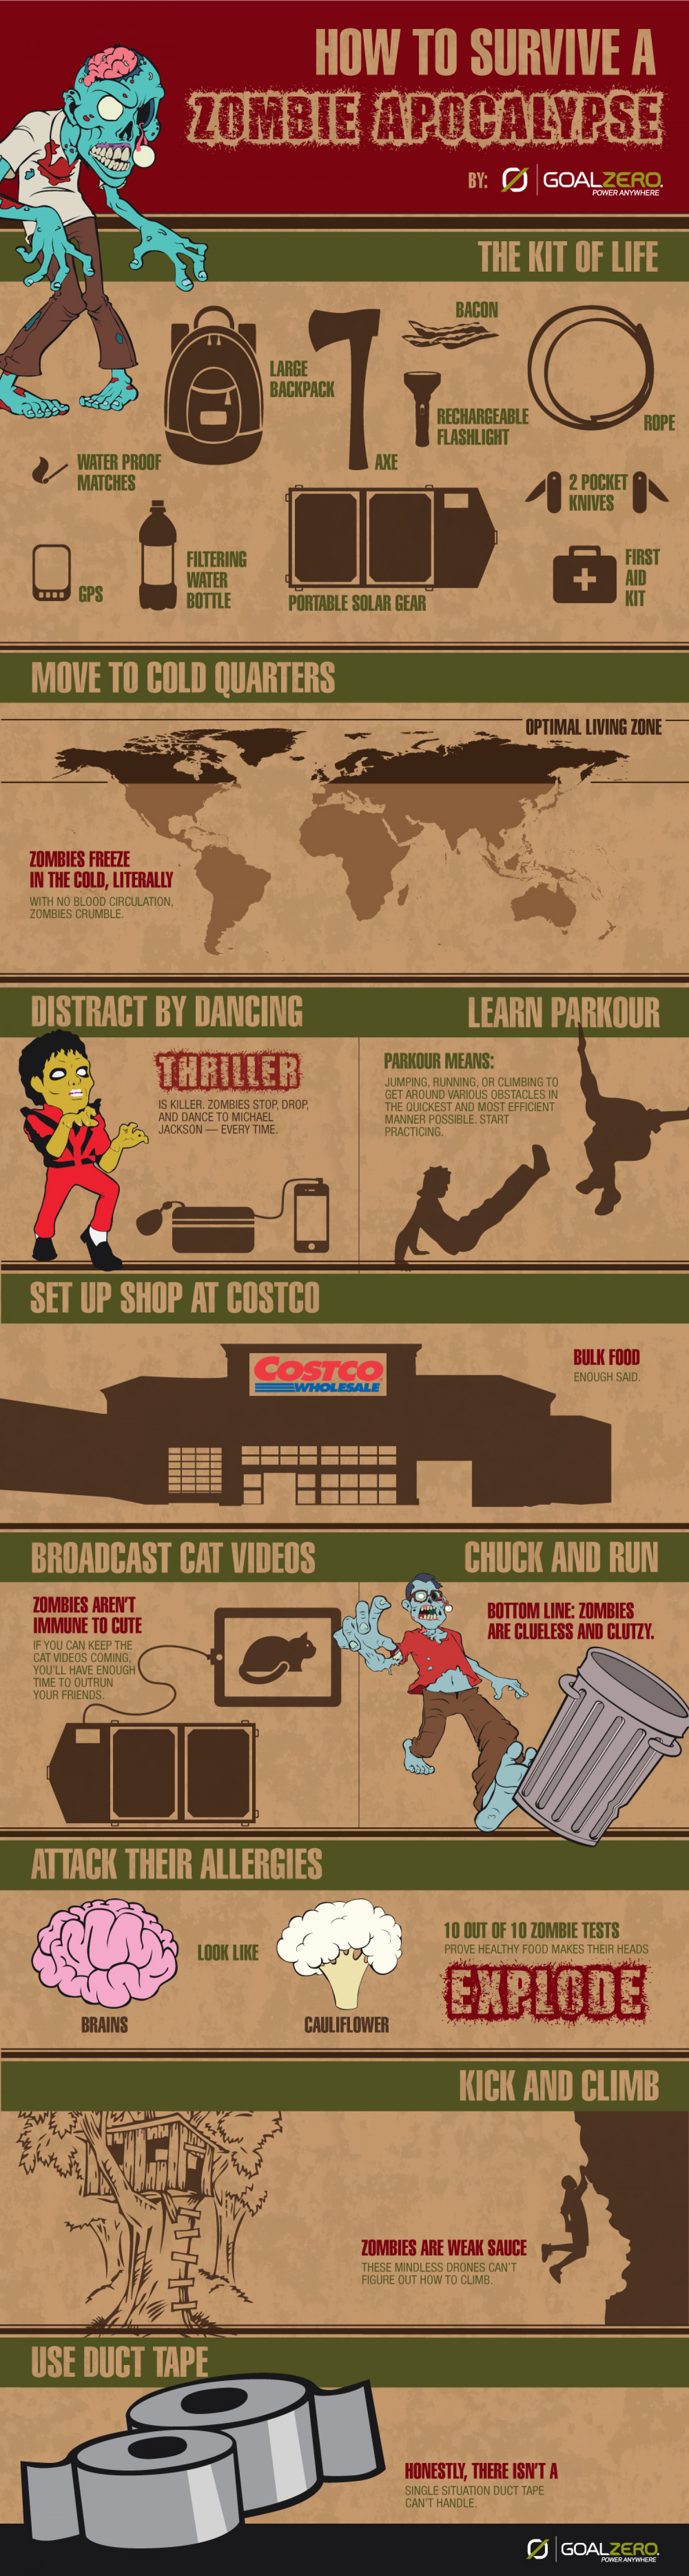 How to Survive a Zombie Apocalypse  Infographic